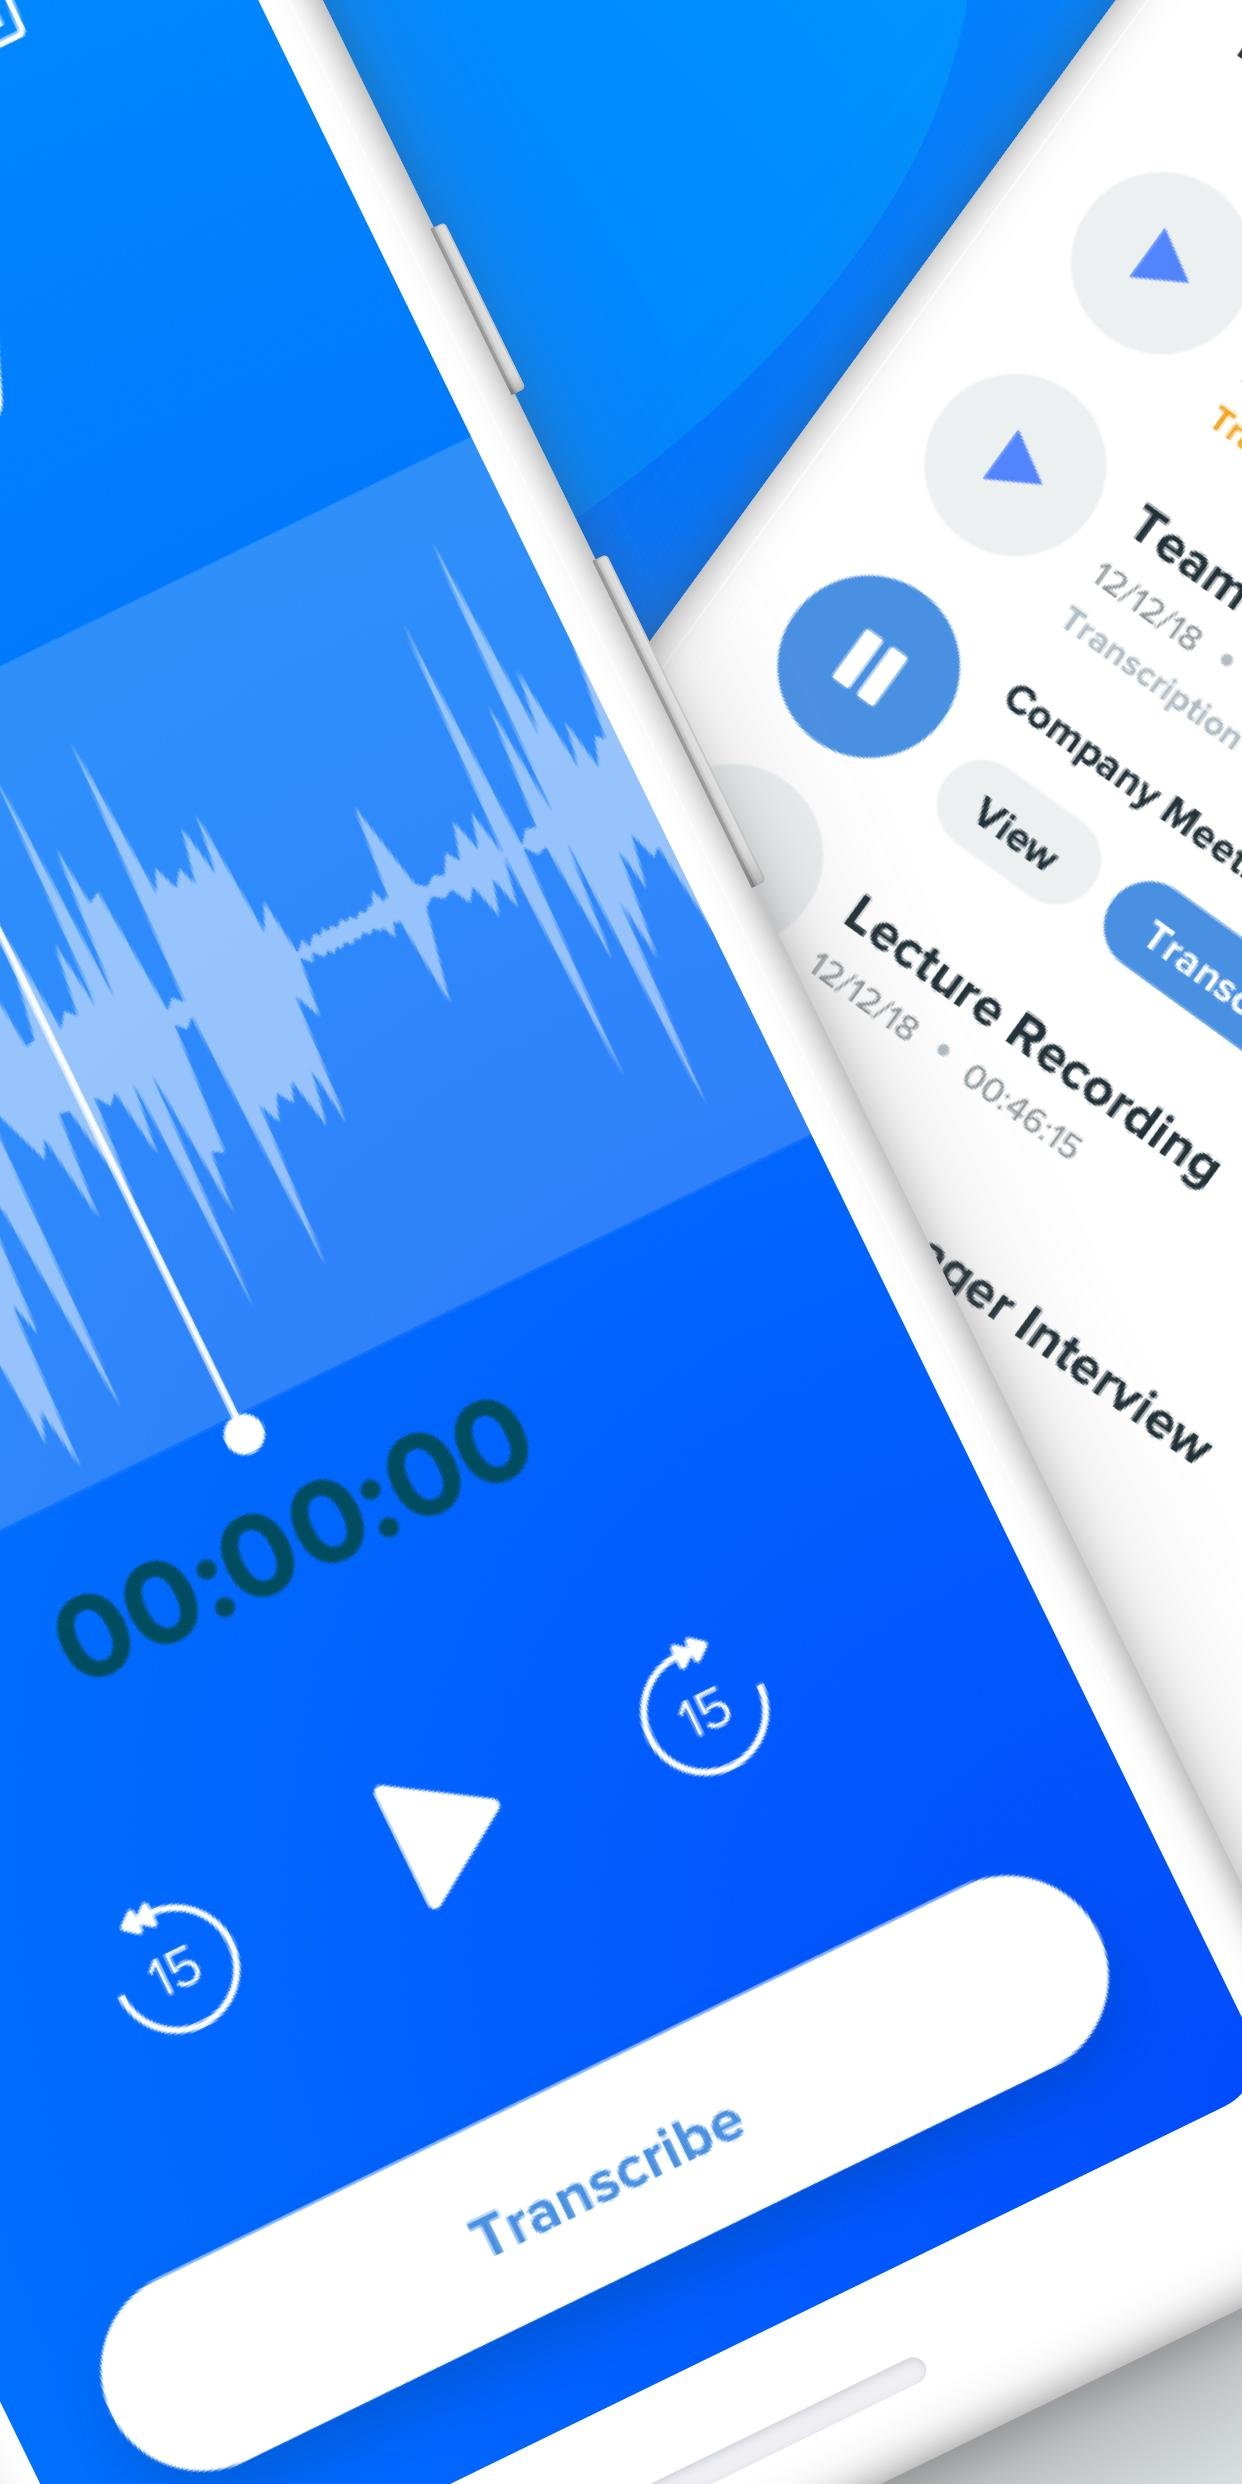 Rev Audio & Voice Recorder for Android - APK Download